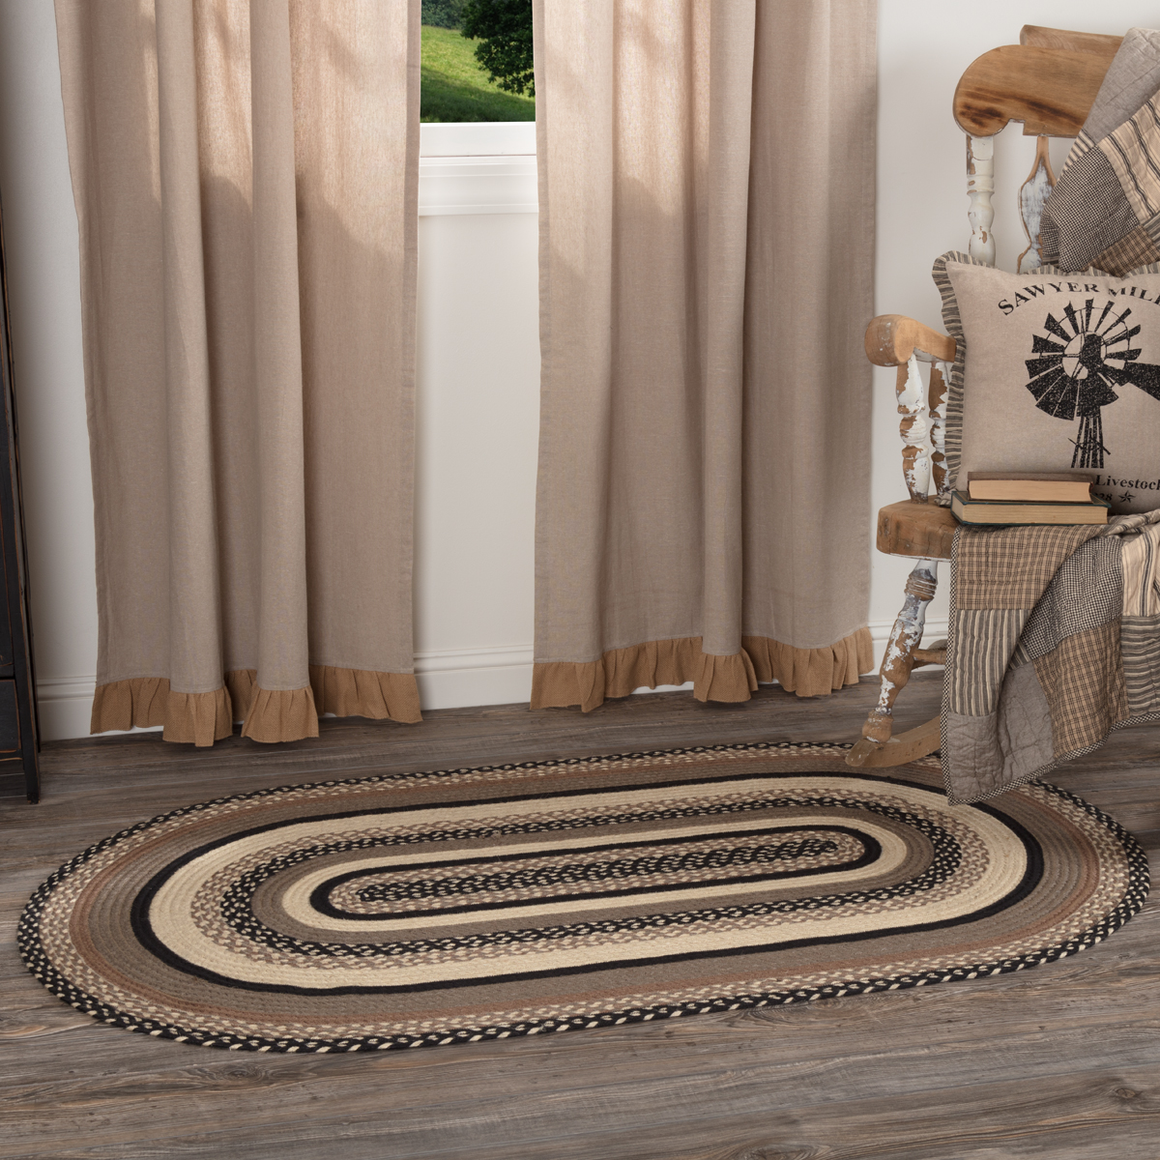 Sawyer Mill Charcoal Braided Oval Rug